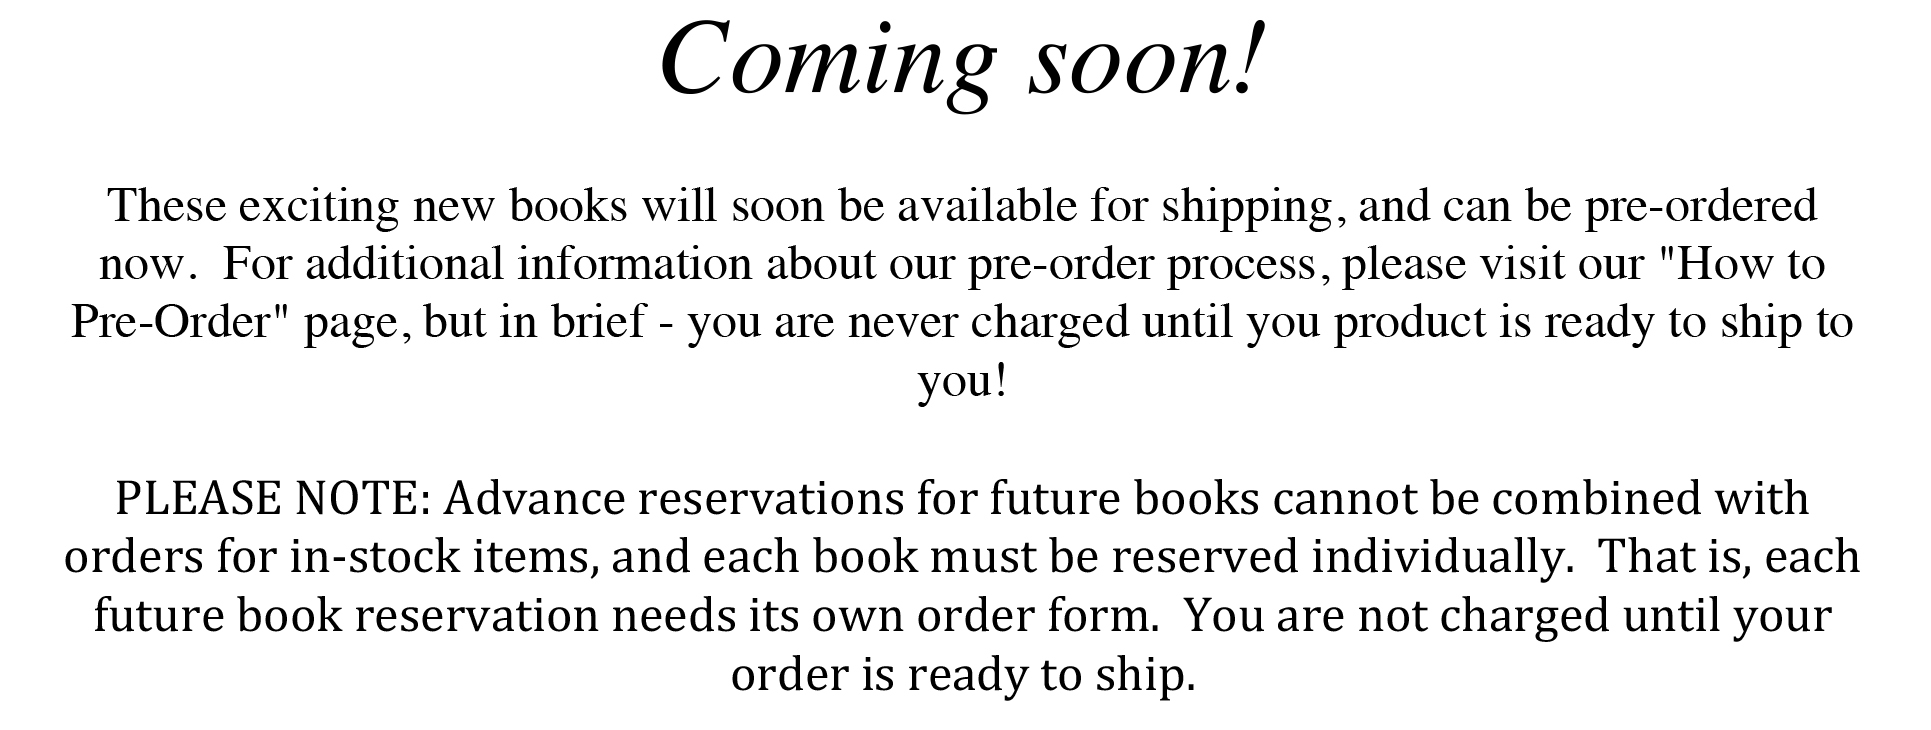 Simply click the cover that interests you, and when the next page opens, click 'additional info' for the product details and the reservation link.